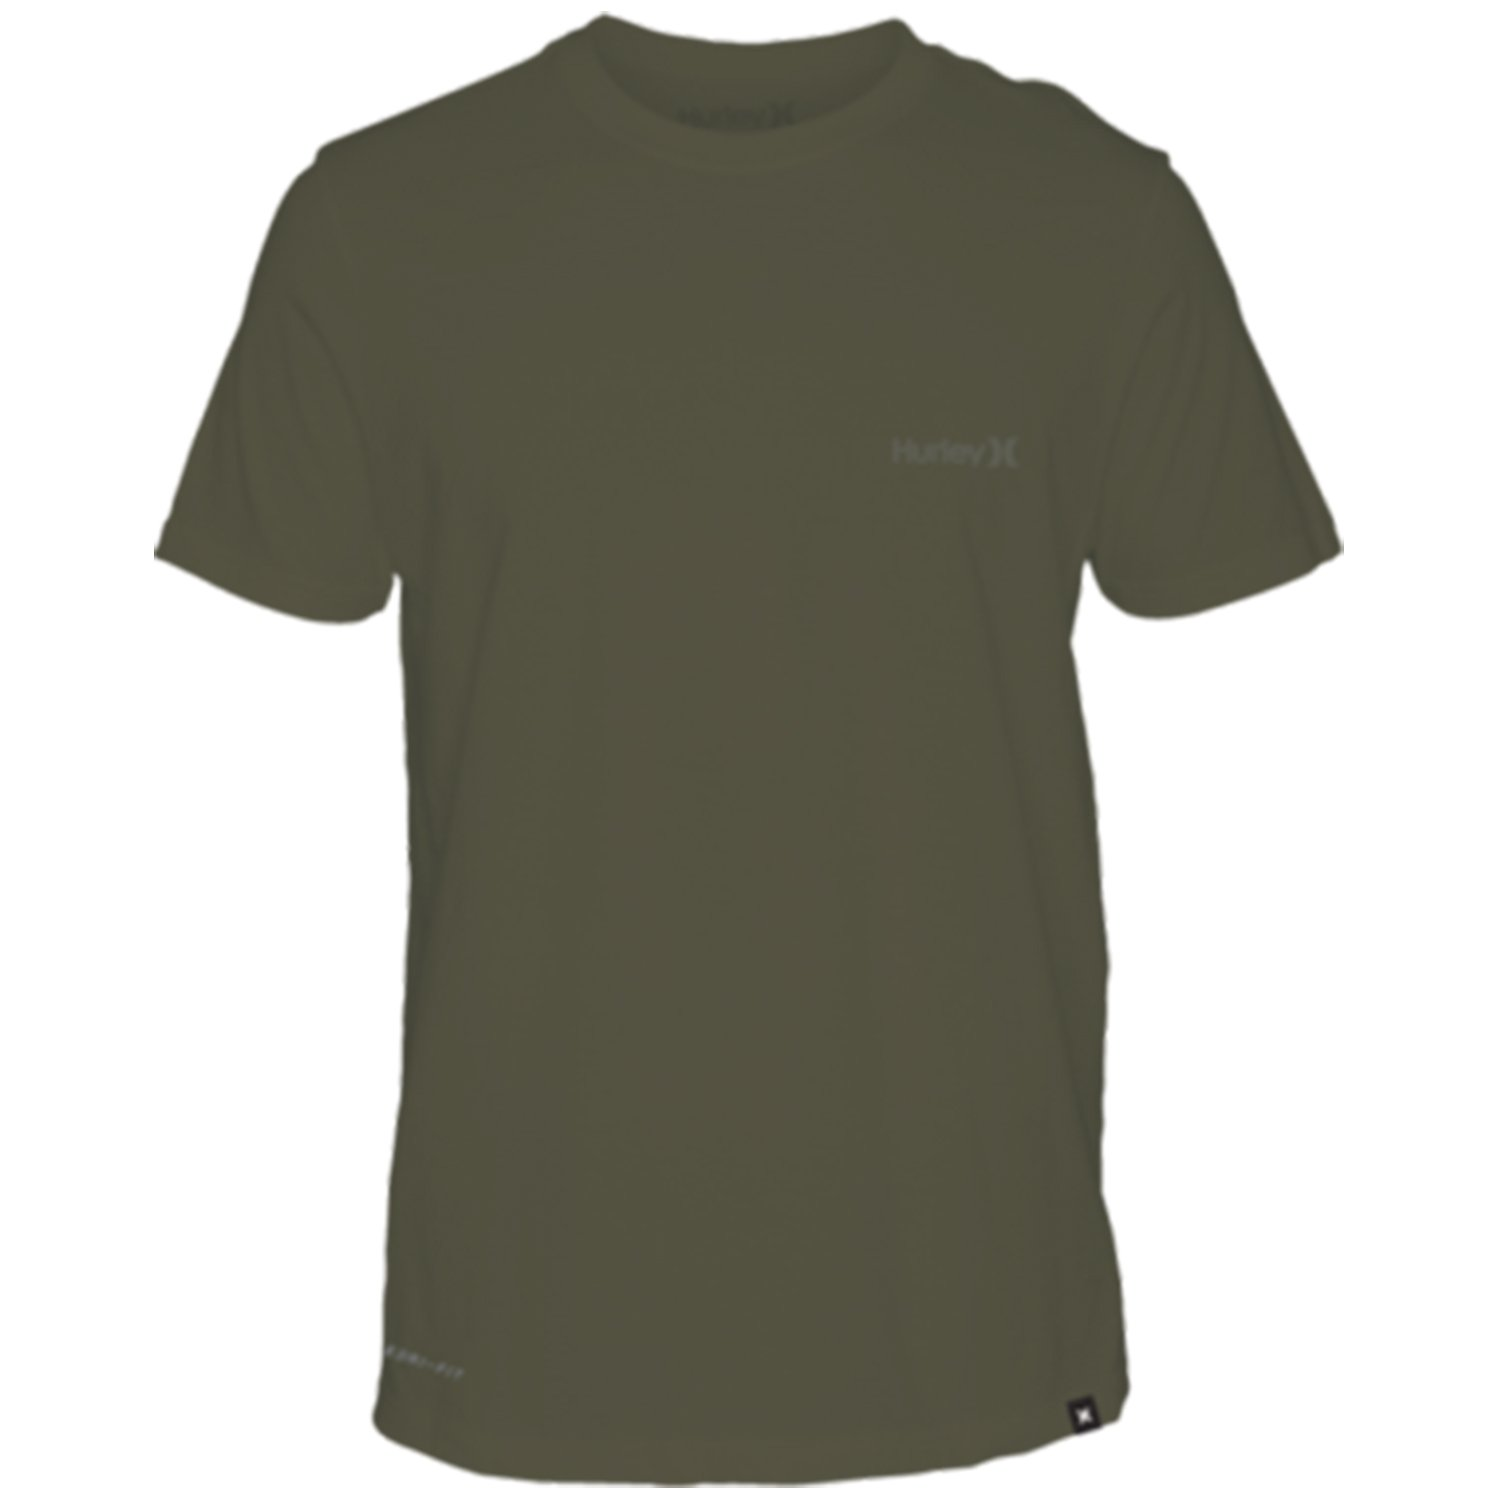 Hurley  Men's Dri-Fit One & Only 2.0 Tee Olive Canvas Medium